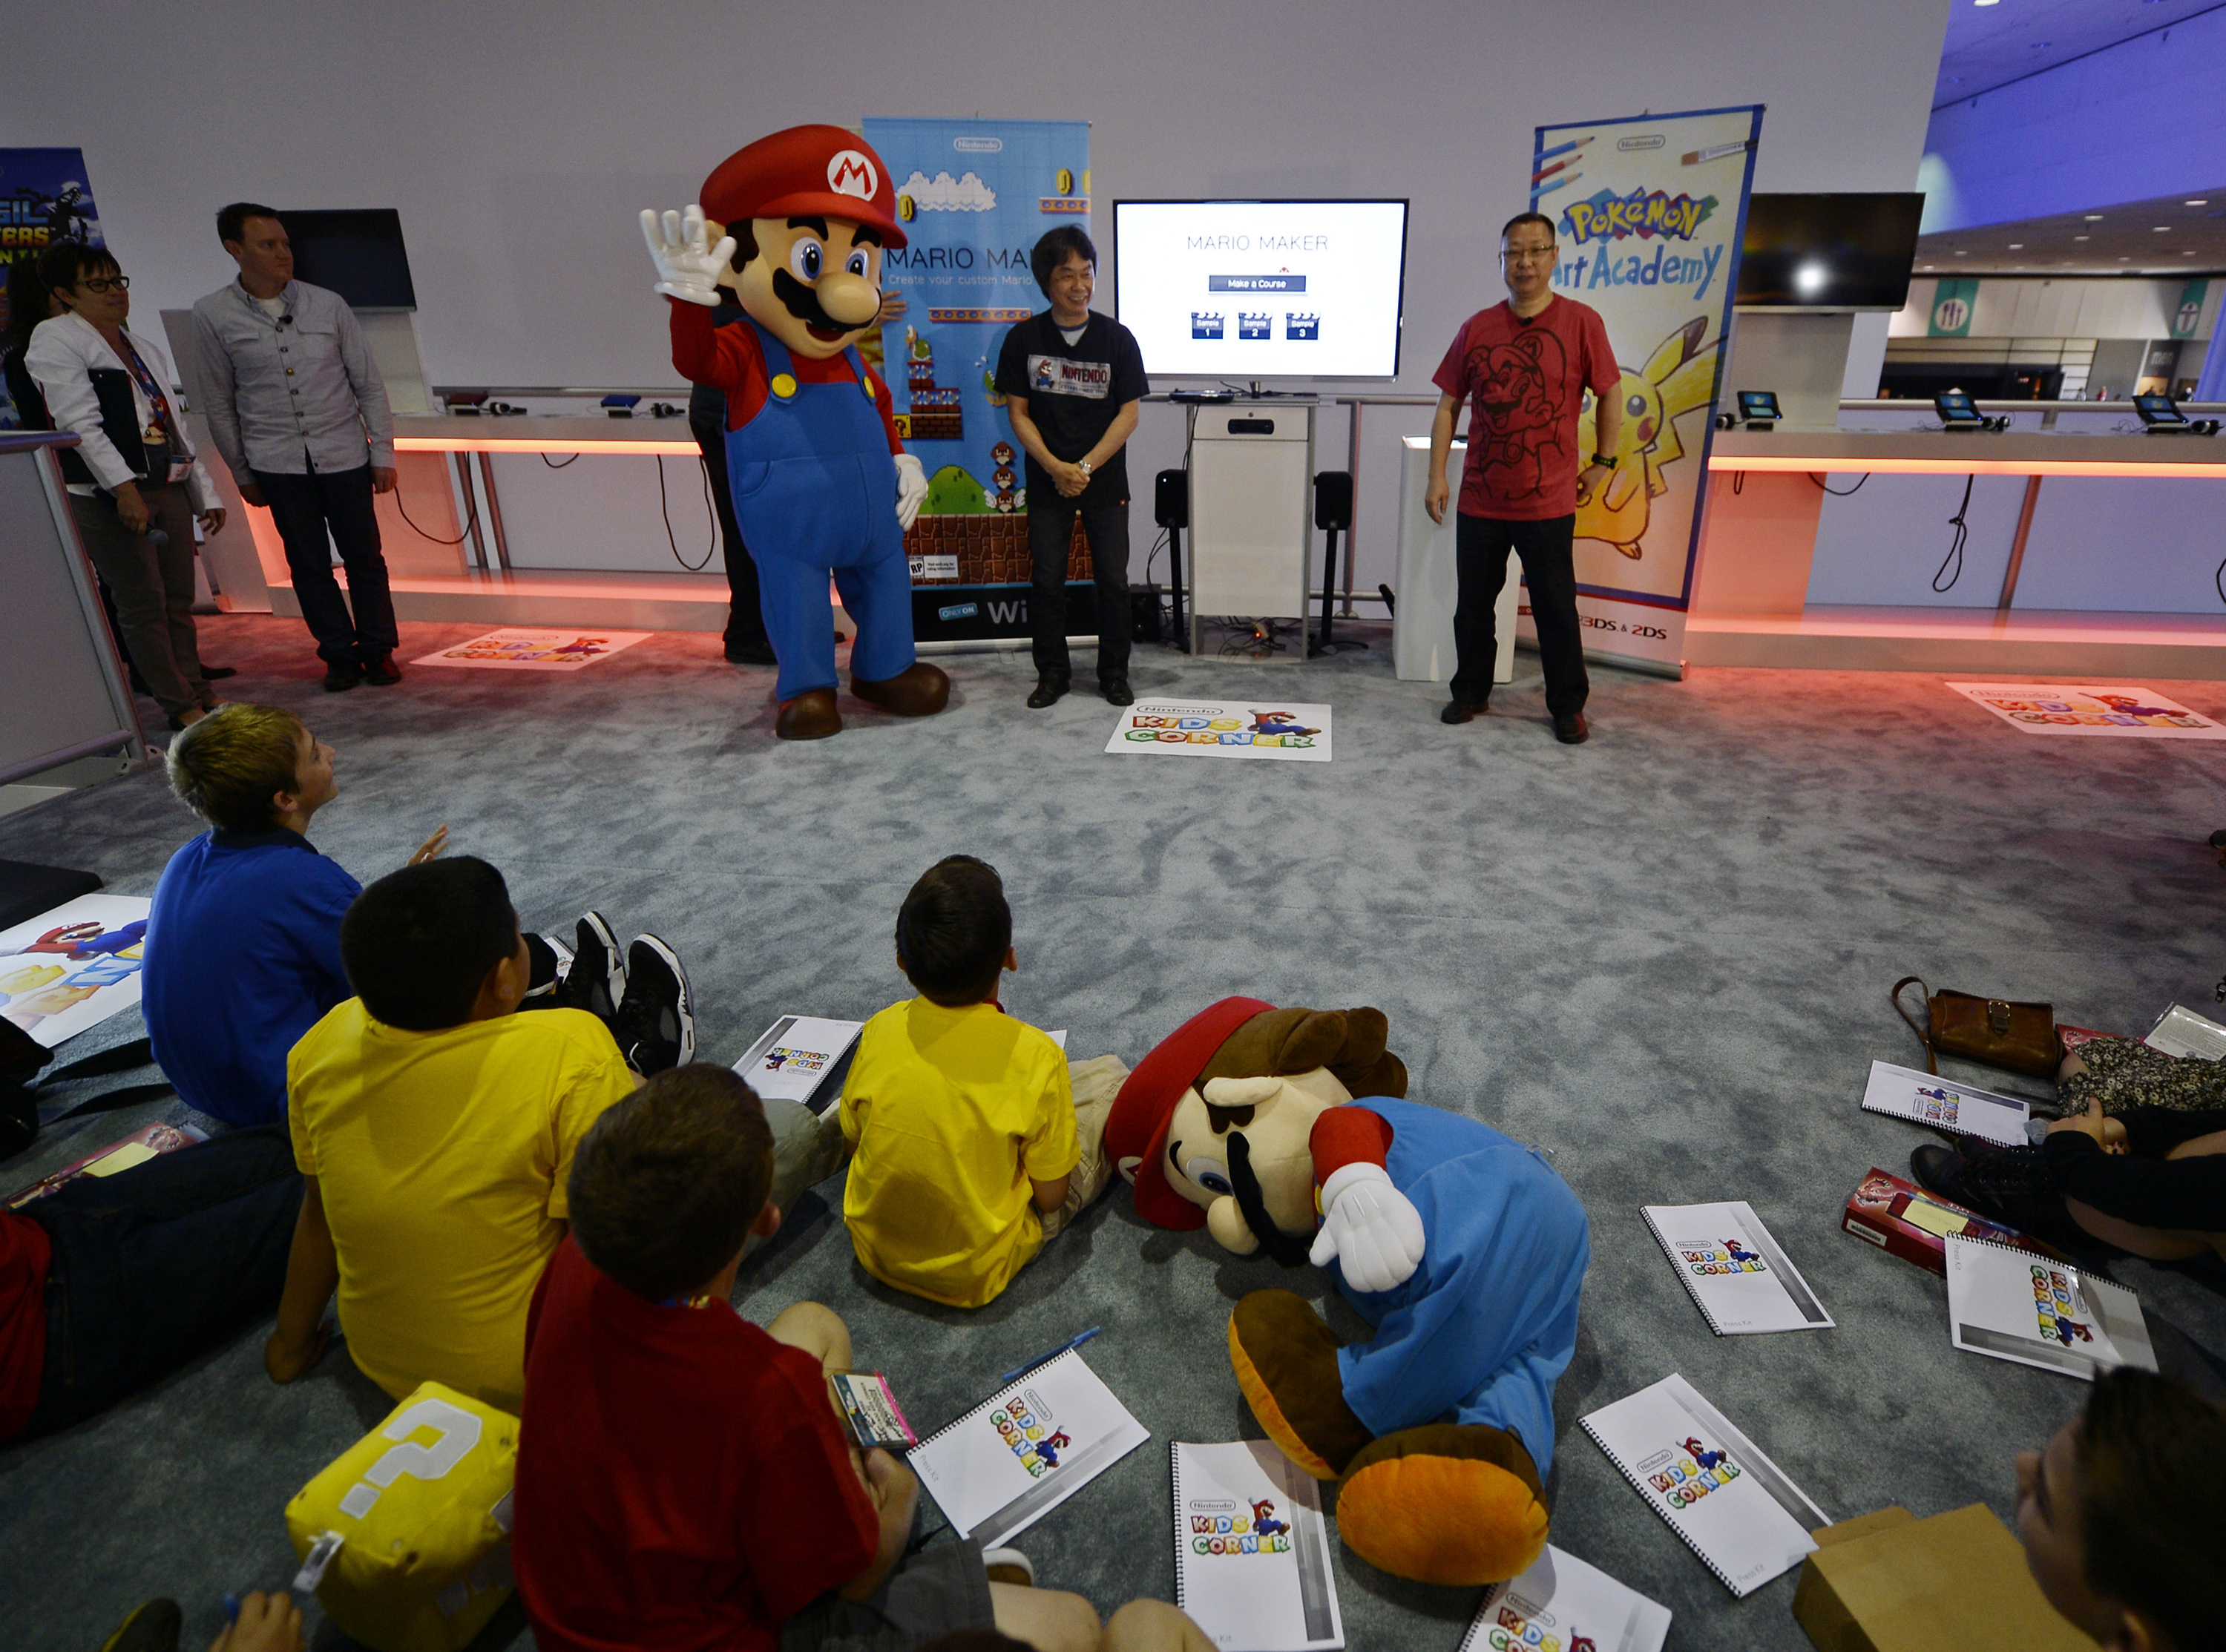 """Shigeru Miyamoto (C), Nintendo's senior managing director and general manager of its Entertainment Analysis and Development division, and Takashi Tezuka (R), executive officer of Nintendo's Entertainment Analysis and Development division, together with Nintendo's character Mario (L), introduce a new game """"Mario Maker"""" while a small group of children look on during a news conference at the 2014 Electronic Entertainment Expo, known as E3, in Los Angeles, California June 11, 2014.  REUTERS/Kevork Djansezian  (UNITED STATES - Tags: SCIENCE TECHNOLOGY SOCIETY BUSINESS TPX IMAGES OF THE DAY)"""